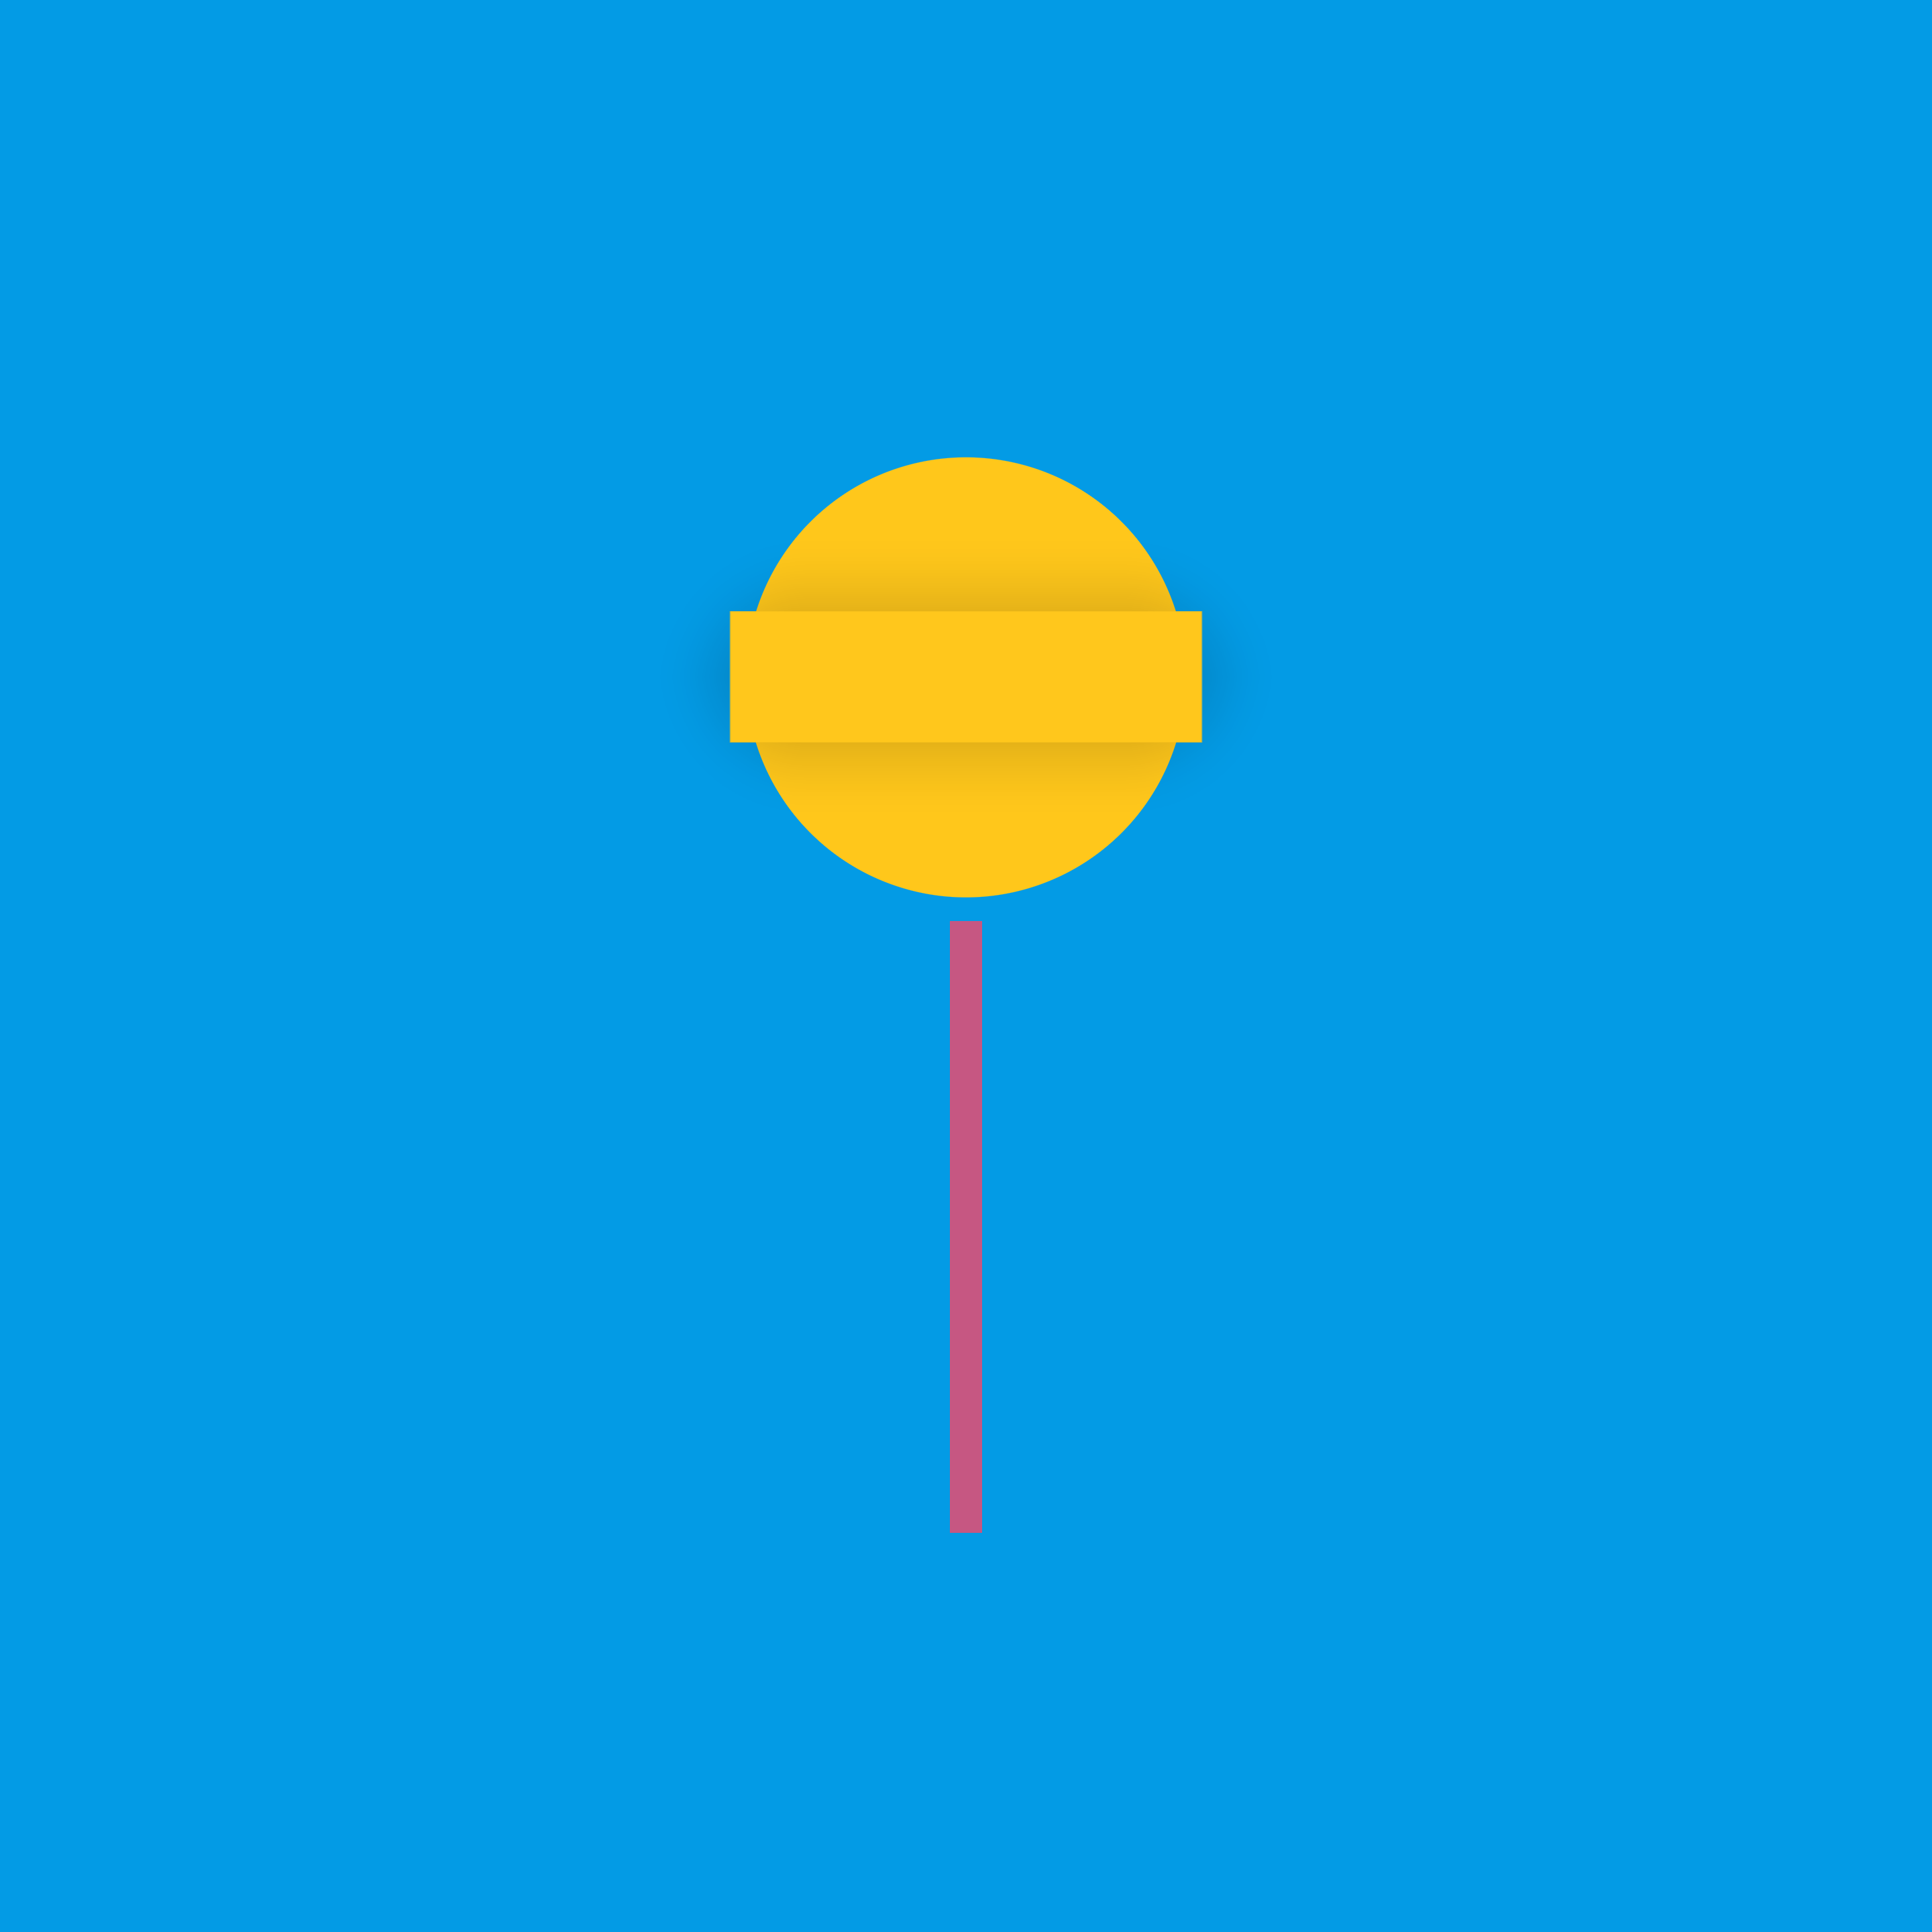 download 11 lollipop material design hd wallpapers - aivanet